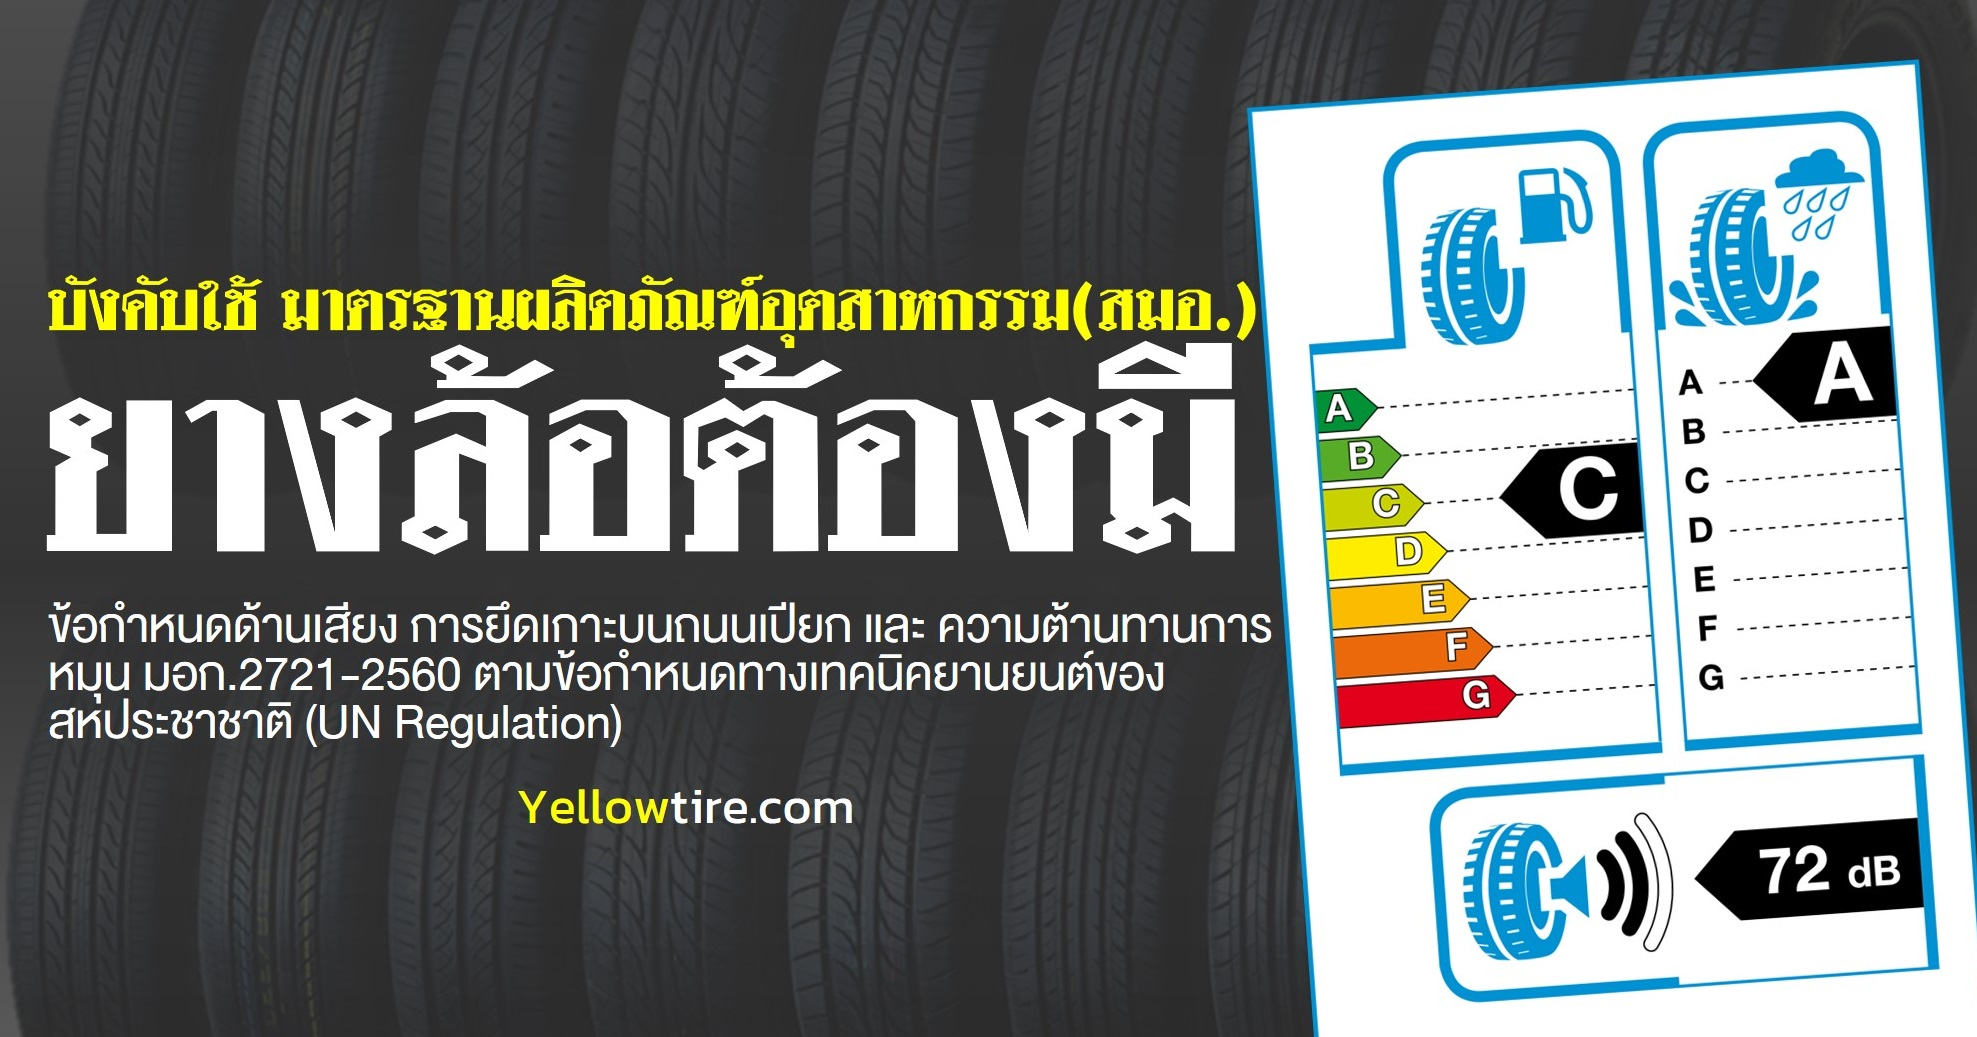 Tire spec on label